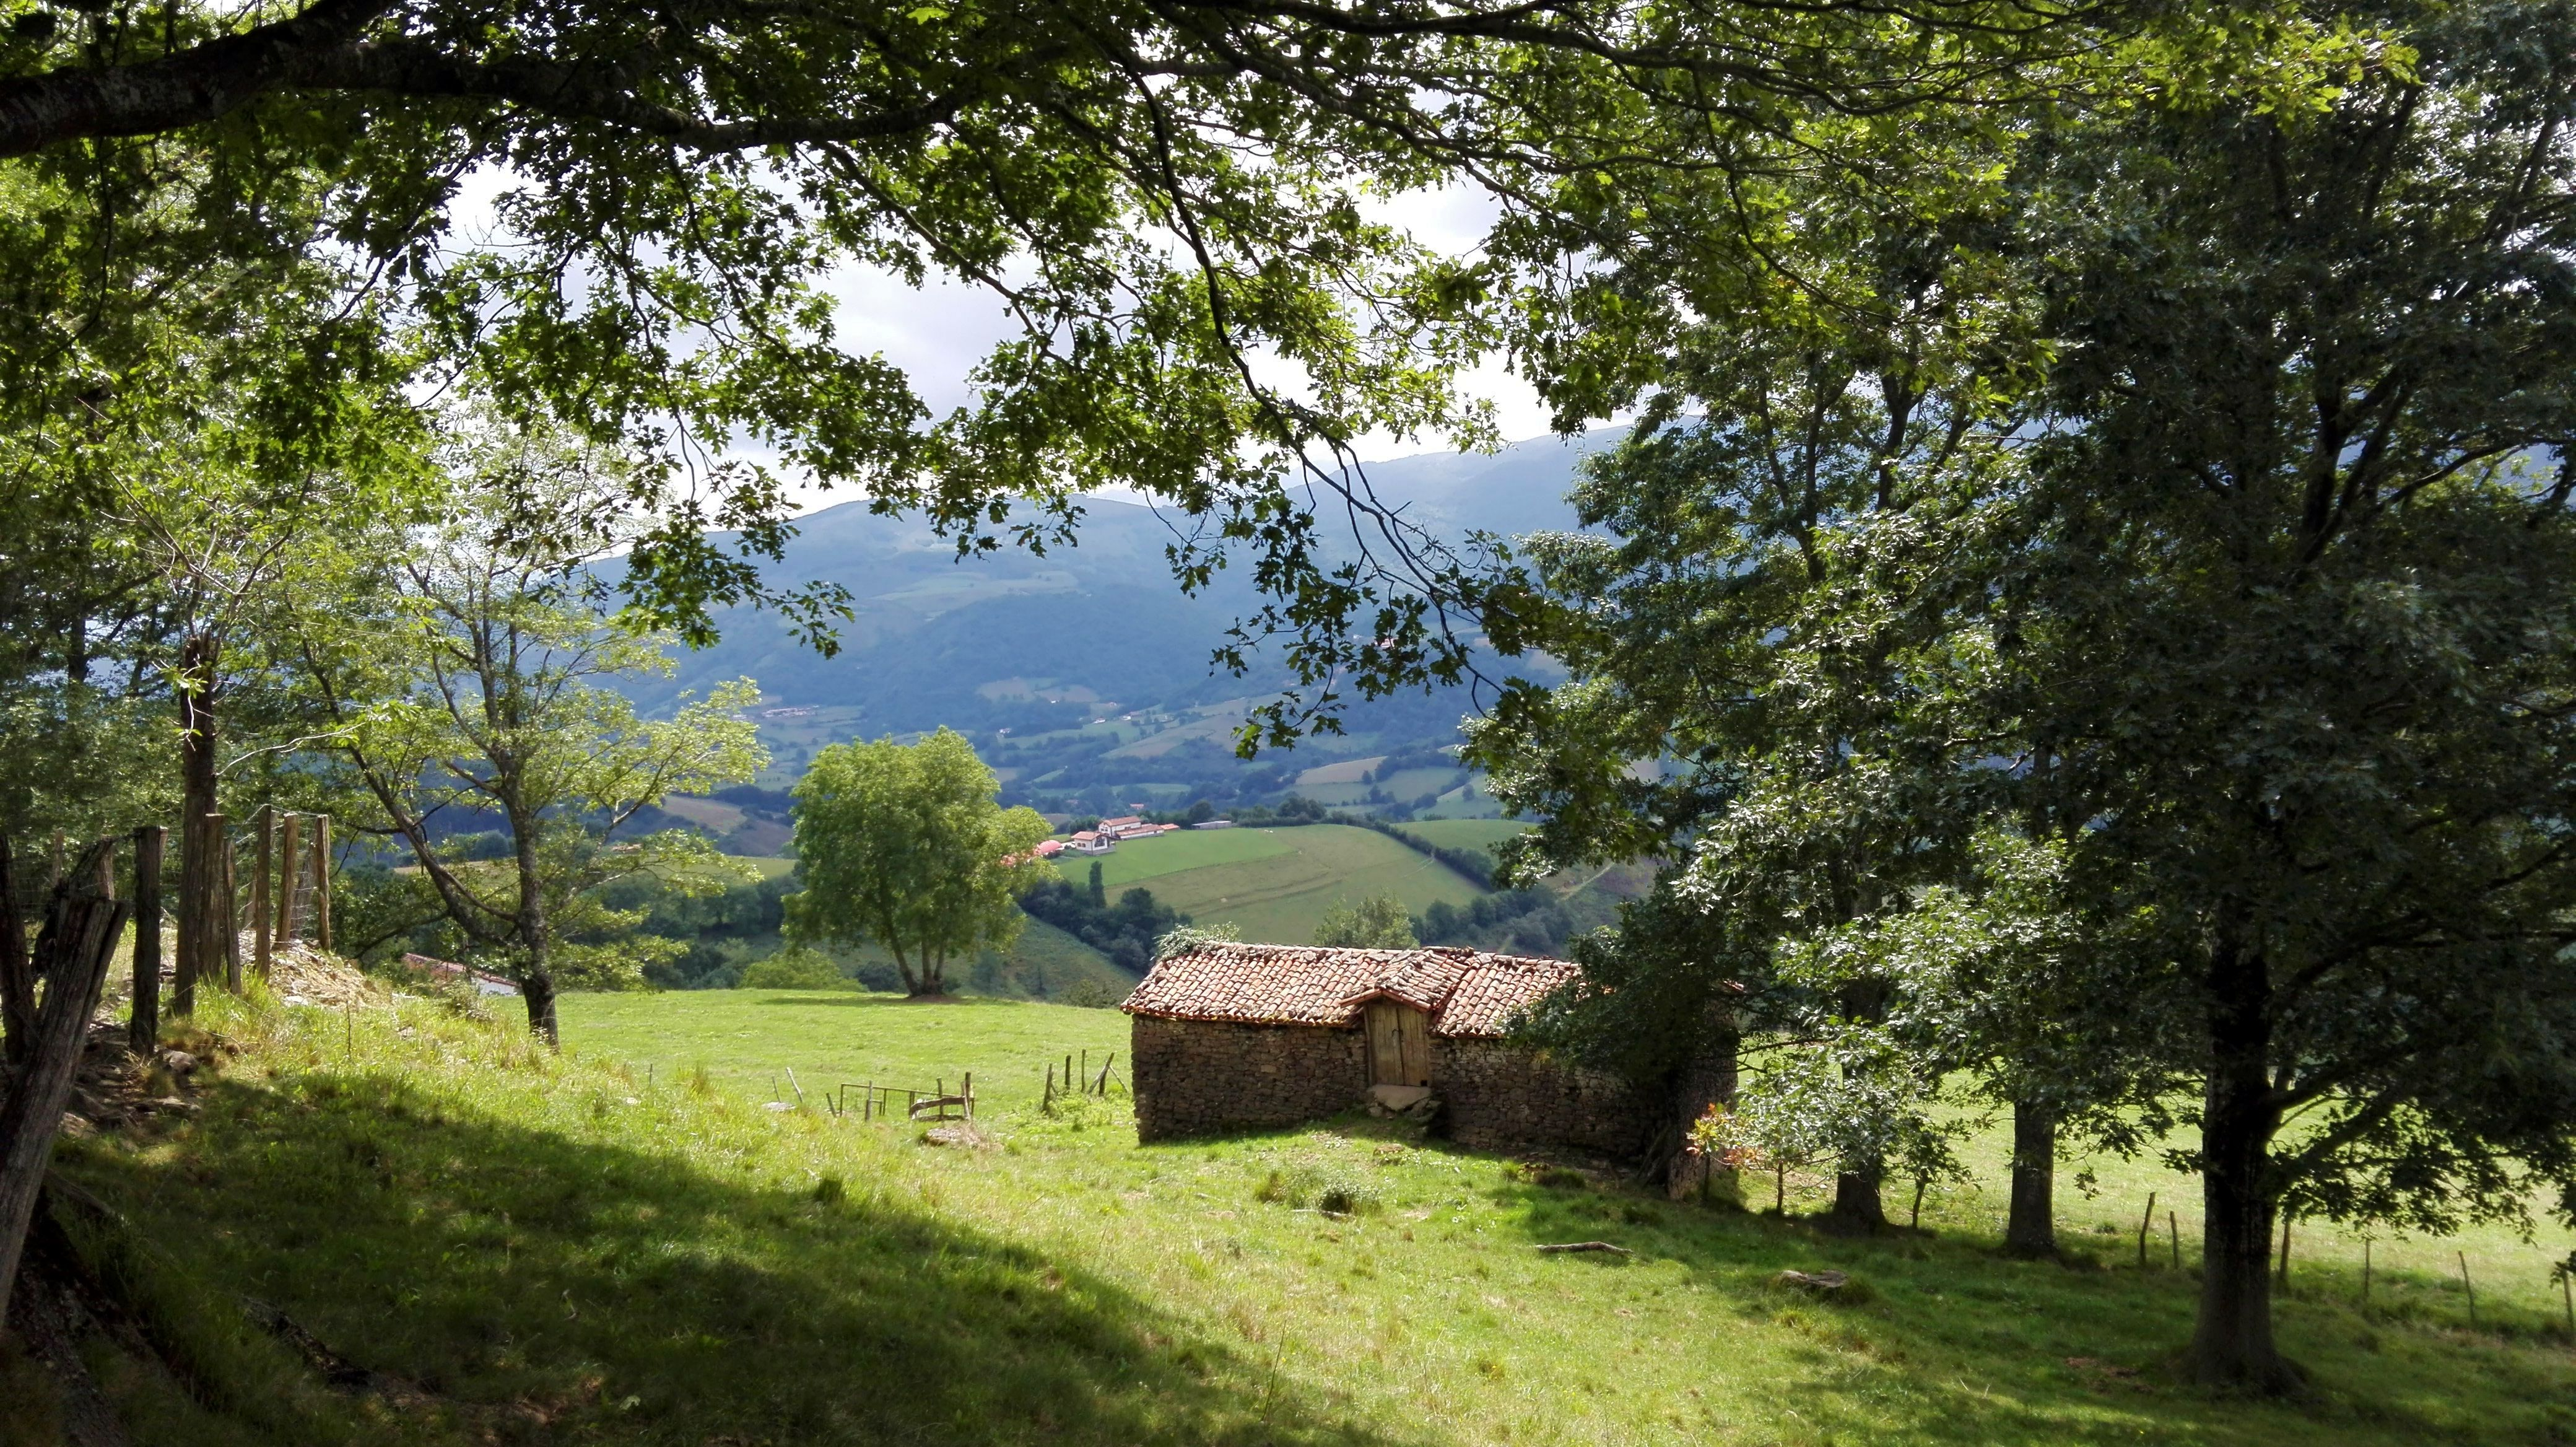 Mountain barns in the Pyrenees